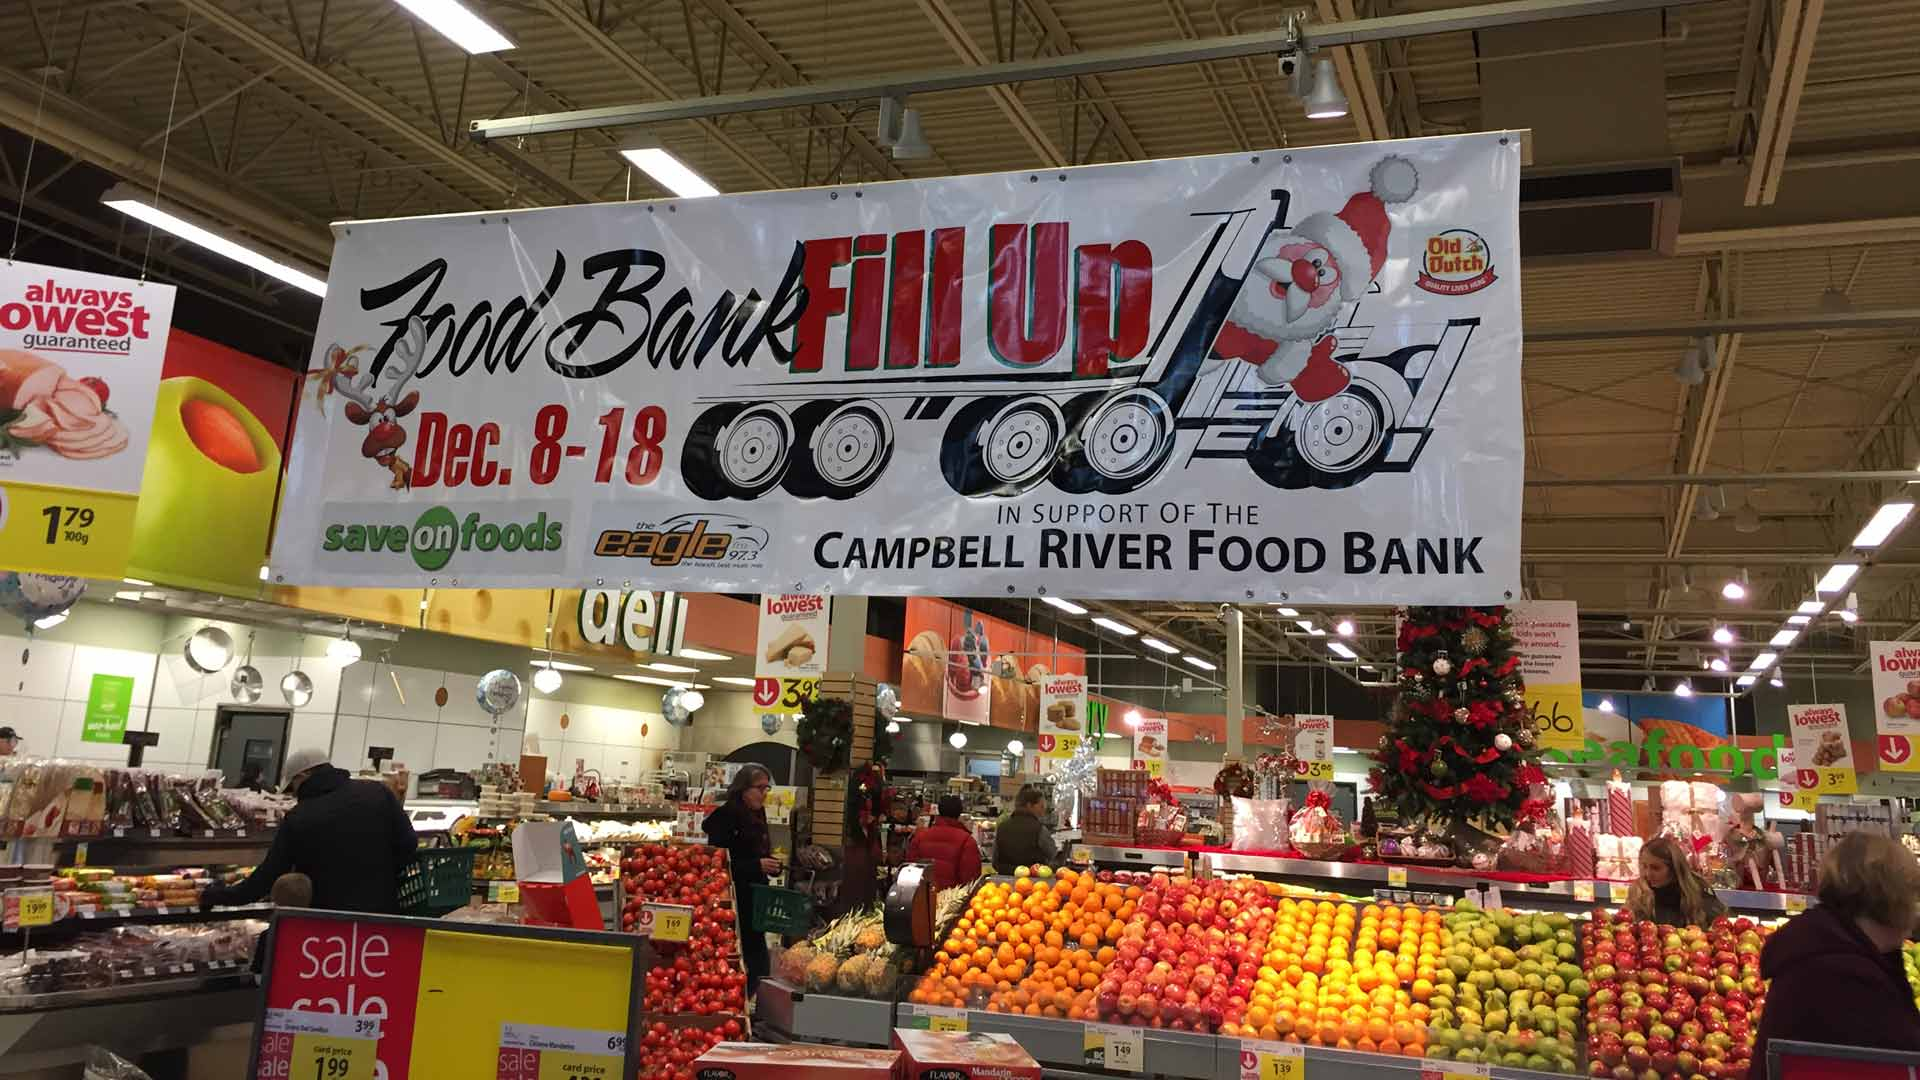 Campbell River Food Bank - Donate